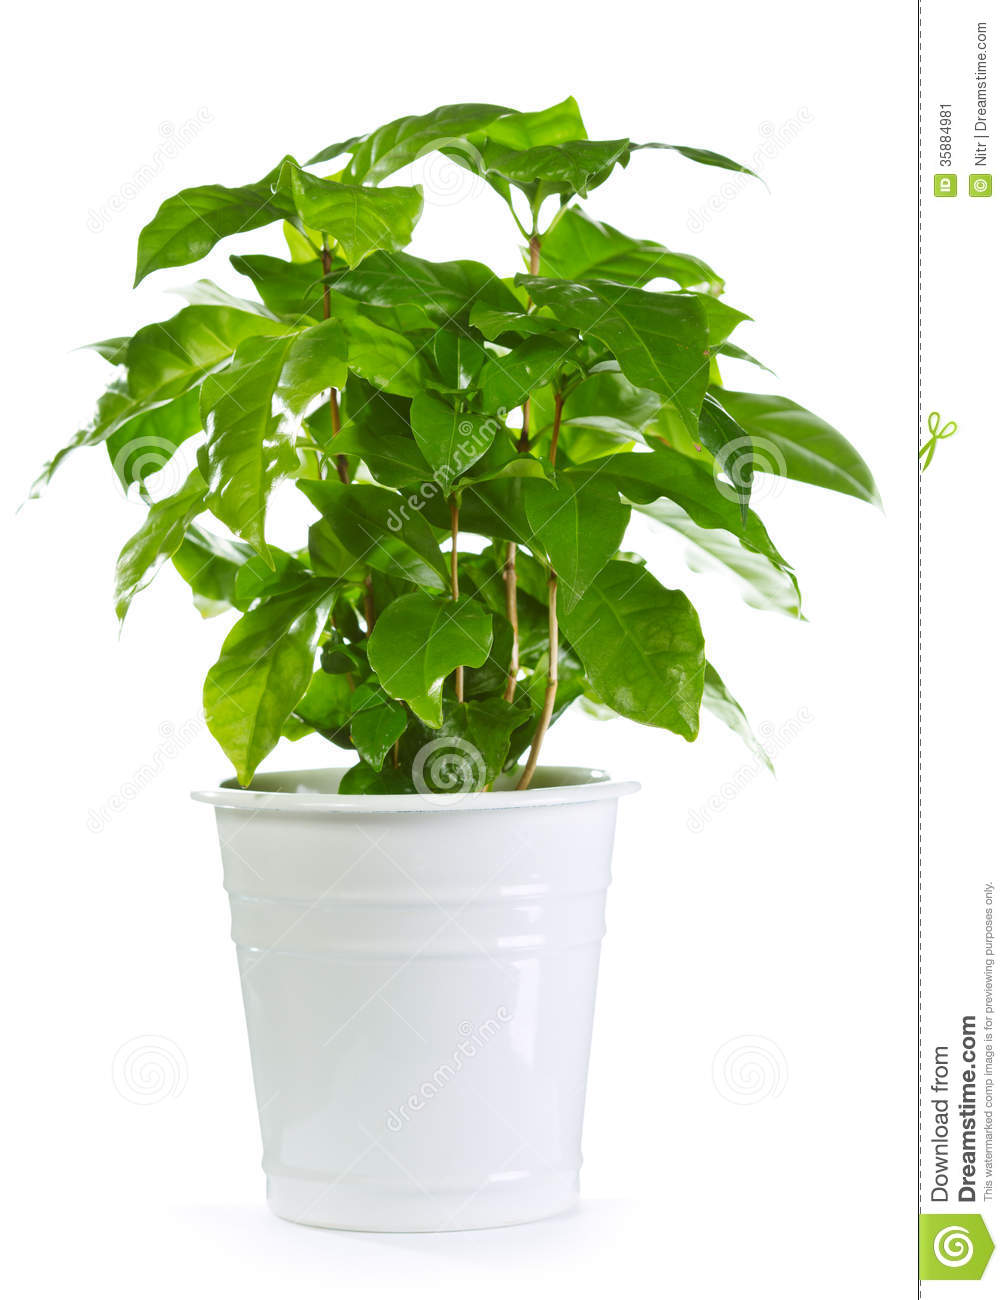 Coffee Plant In A Pot Stock Image - Image: 35884981